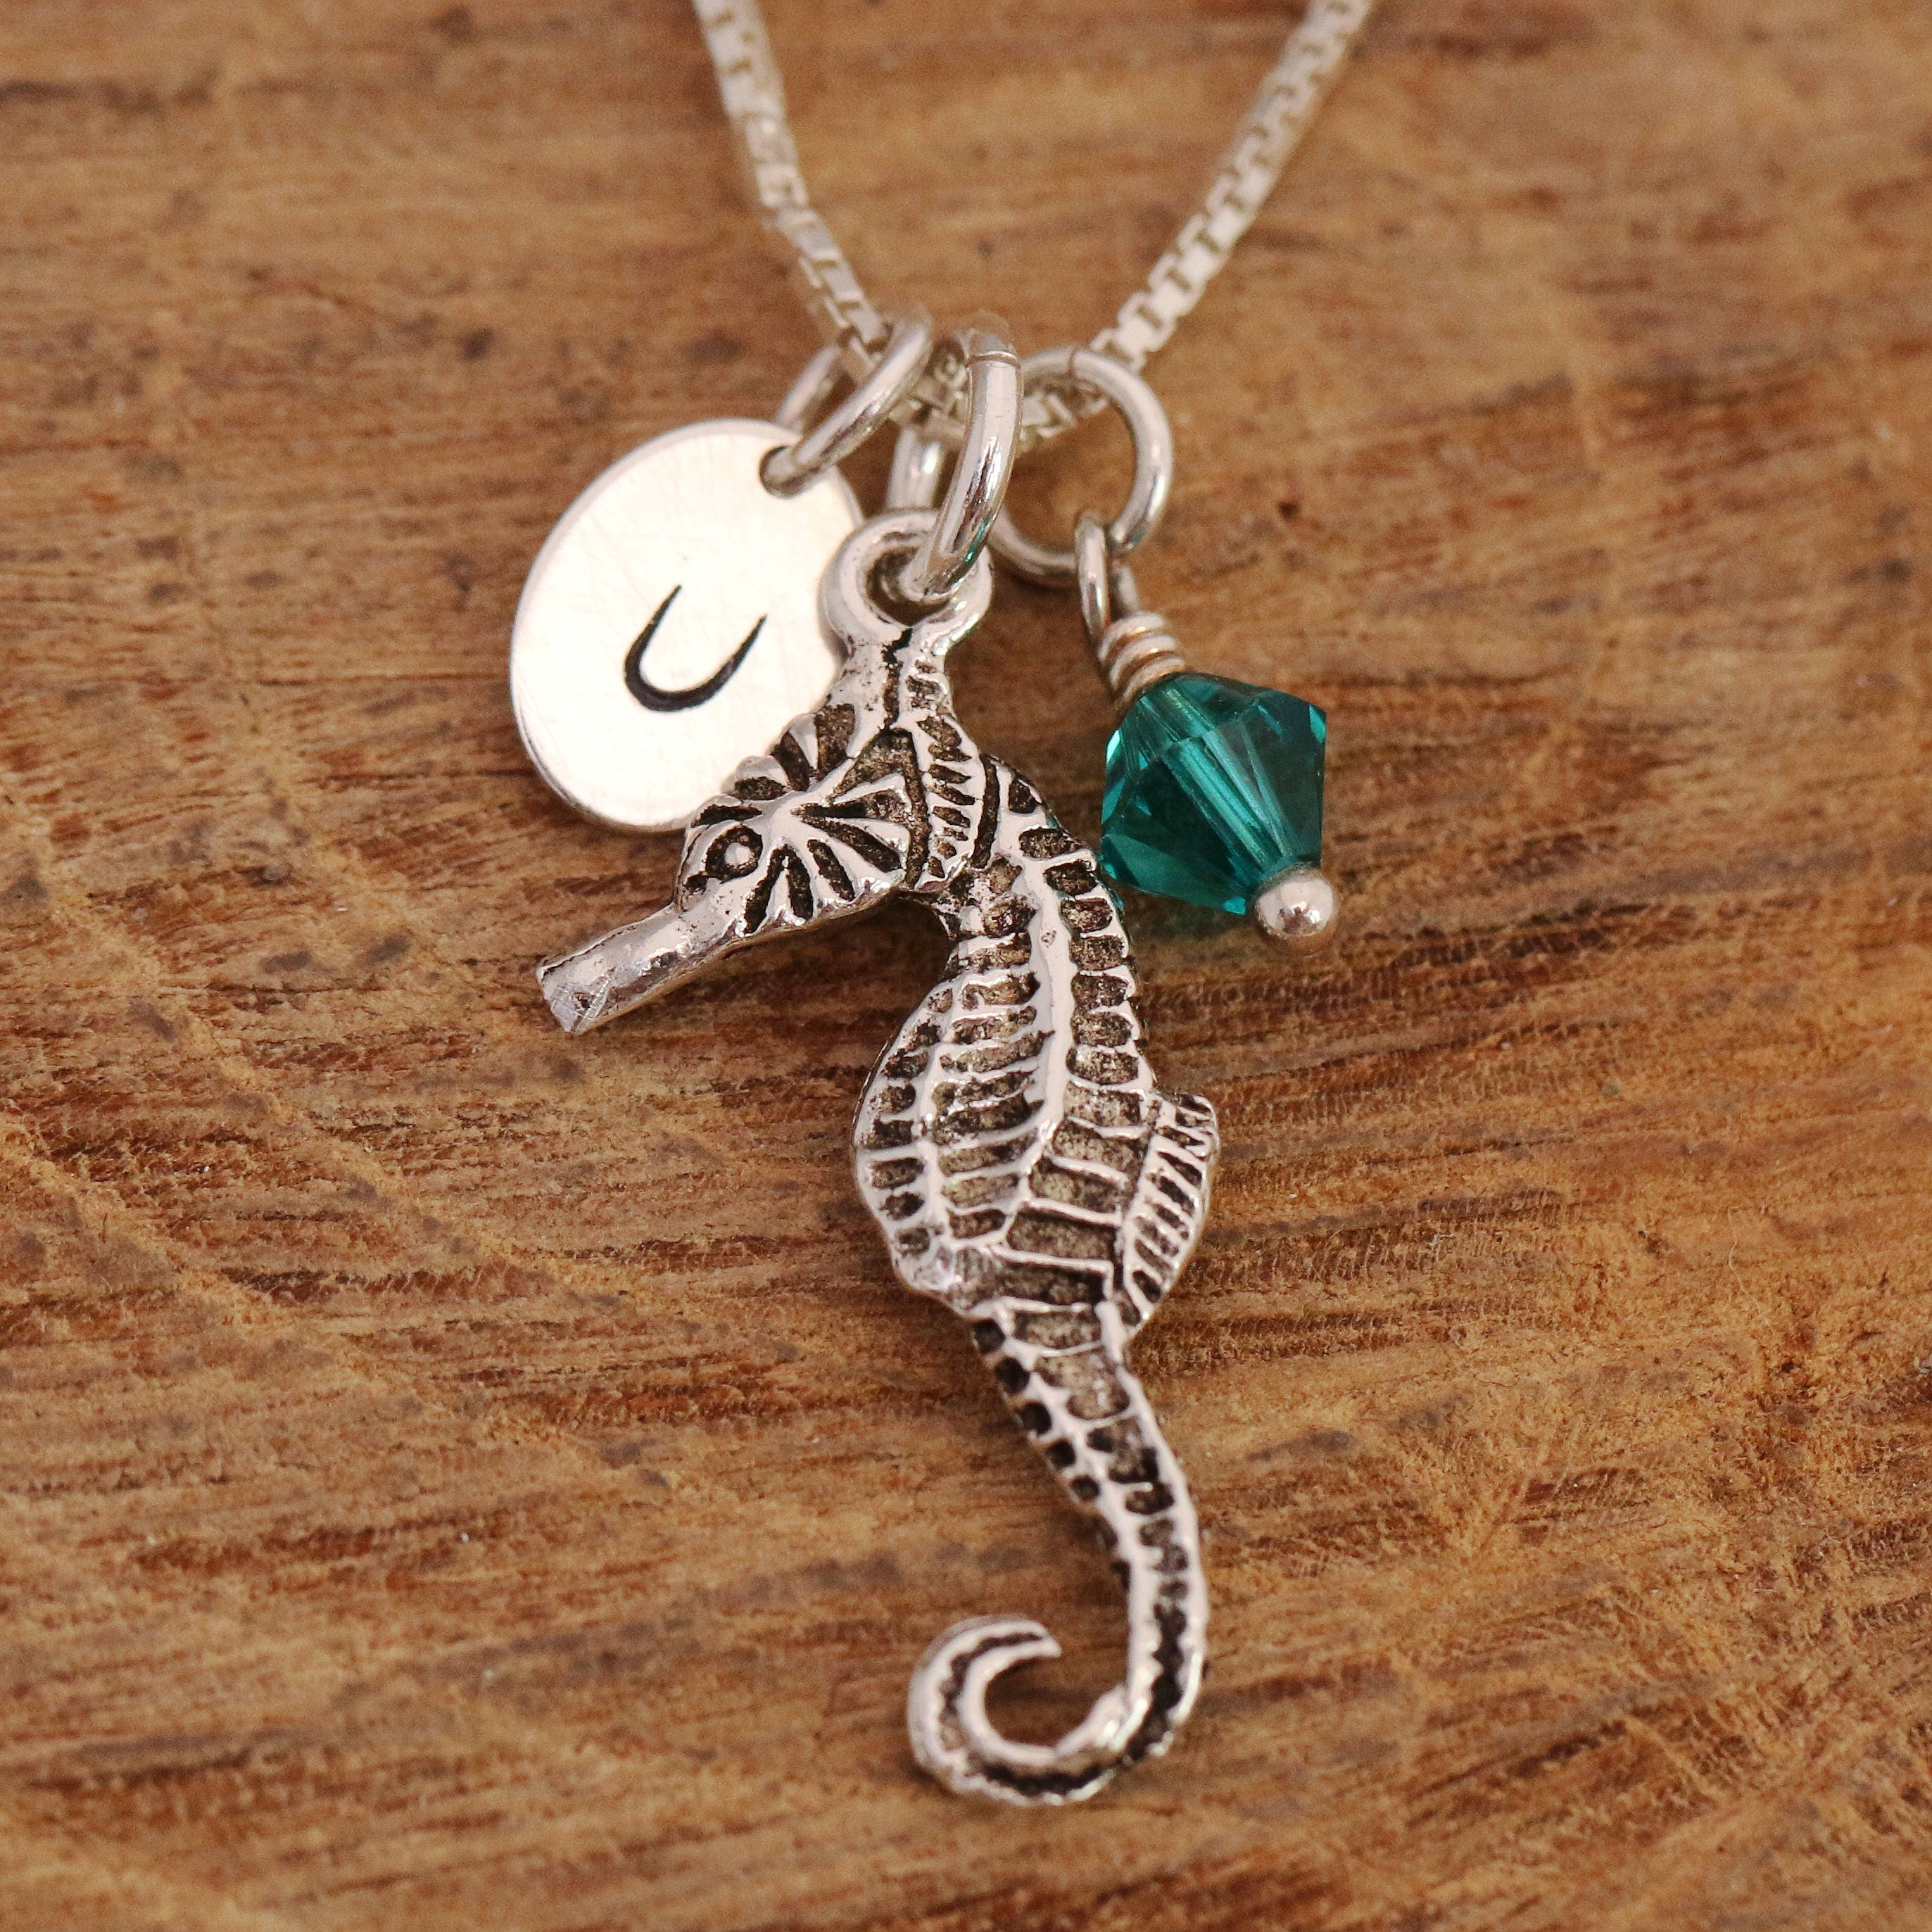 products necklace necklaces jewelry seahorse delicious collections gwen designs